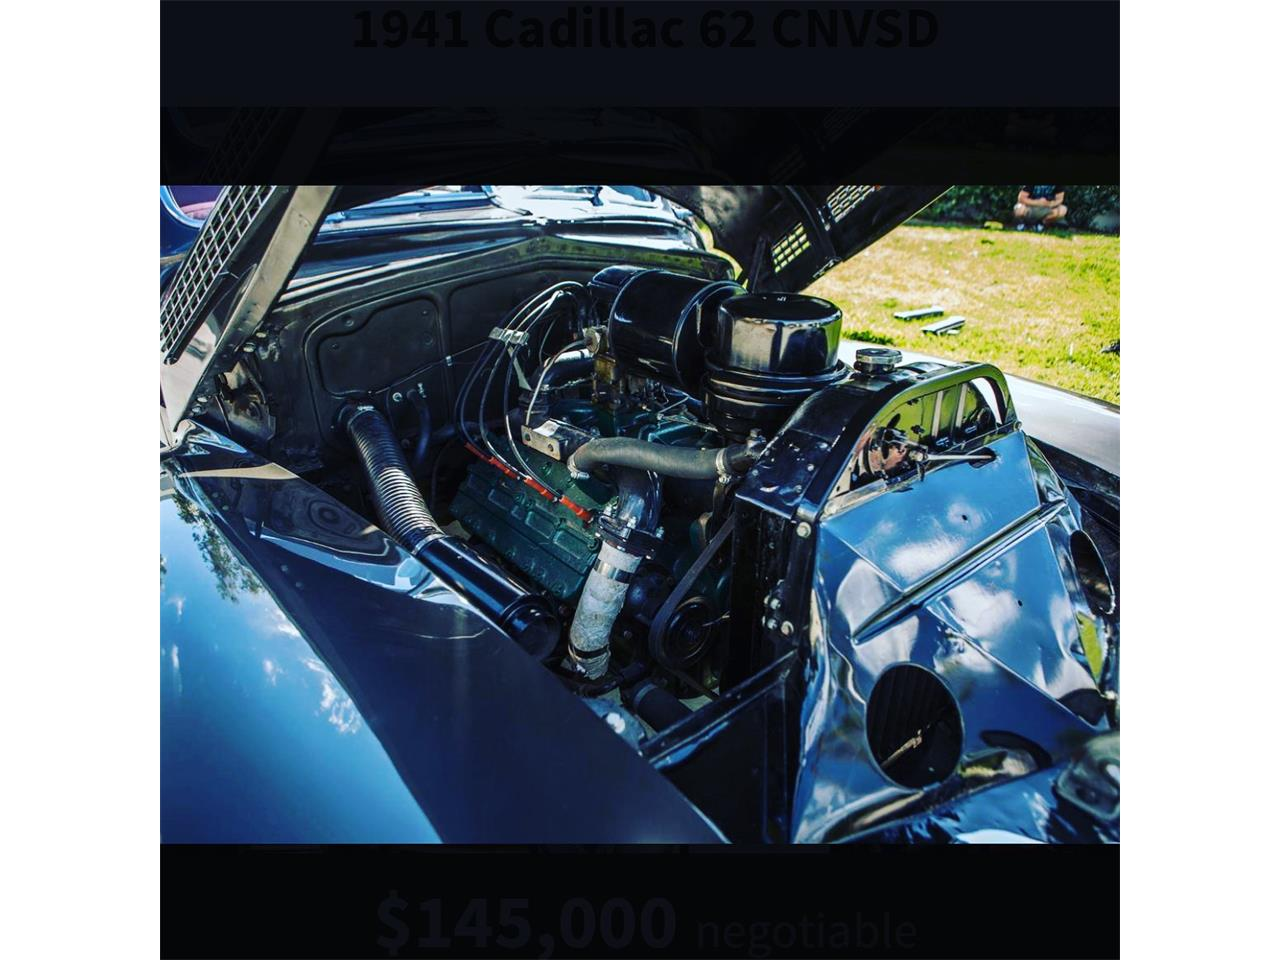 Large Picture of Classic '41 Cadillac Series 62 Offered by a Private Seller - N67J